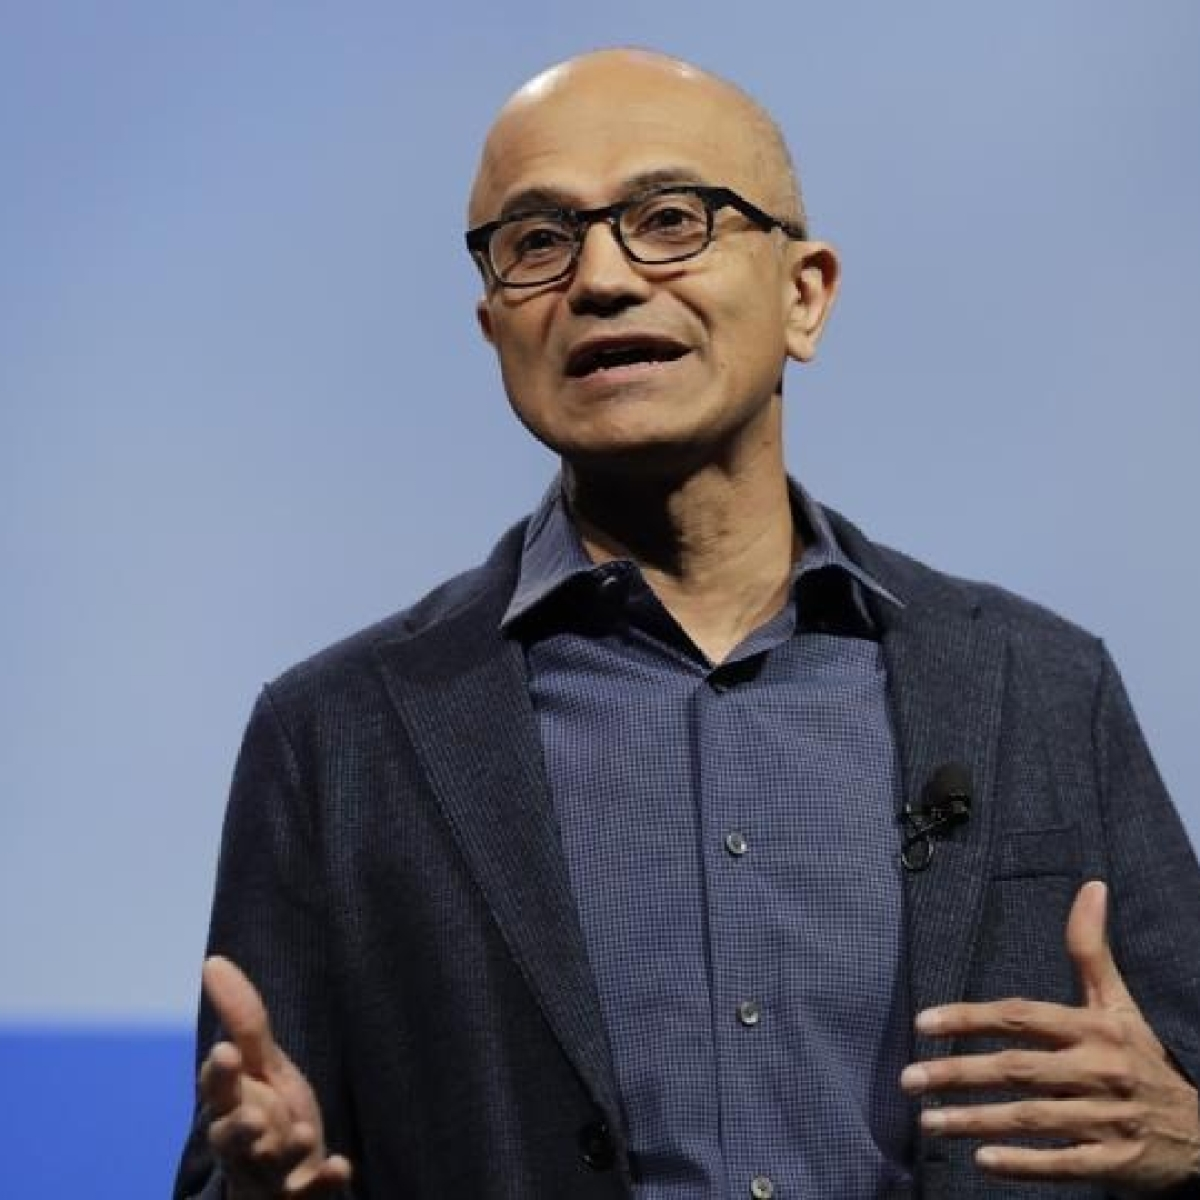 Sorry Satya Nadella, nothing is preventing a legal Bangladeshi immigrant from becoming Infosys CEO